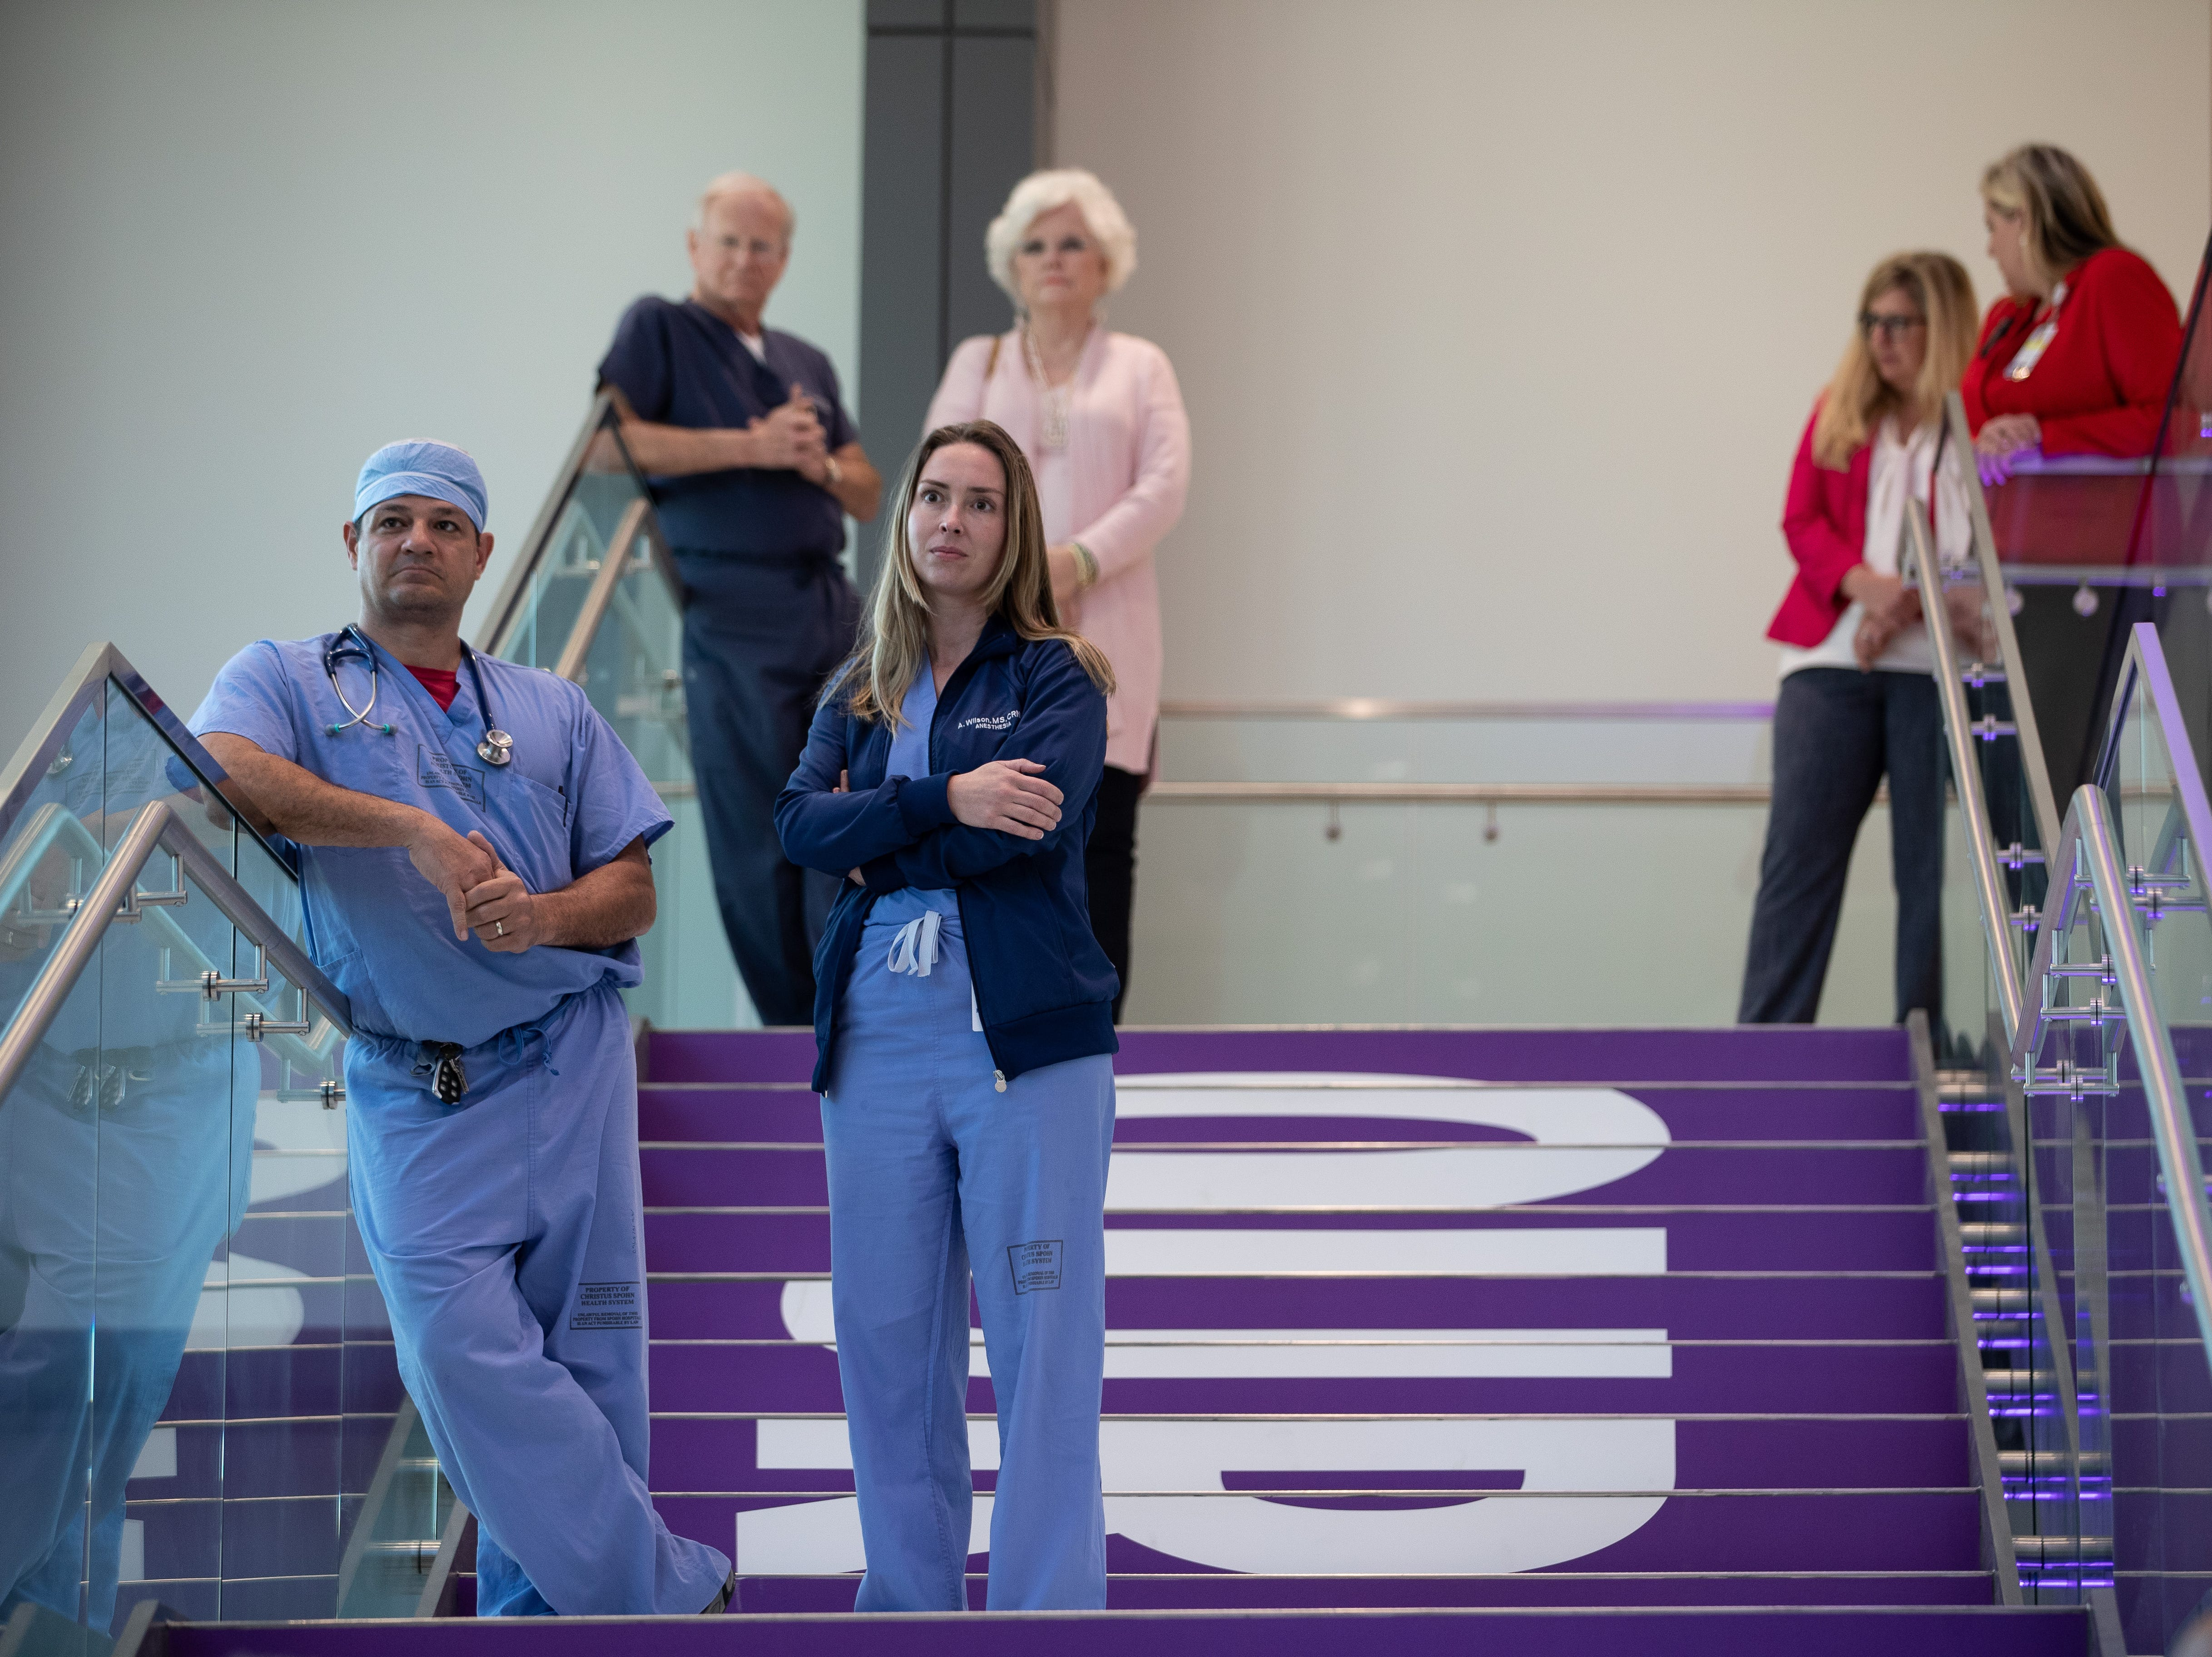 Doctors watch during the opening new $335 million North Tower at Shoreline Hospital on Thursday, March 28, 2019.